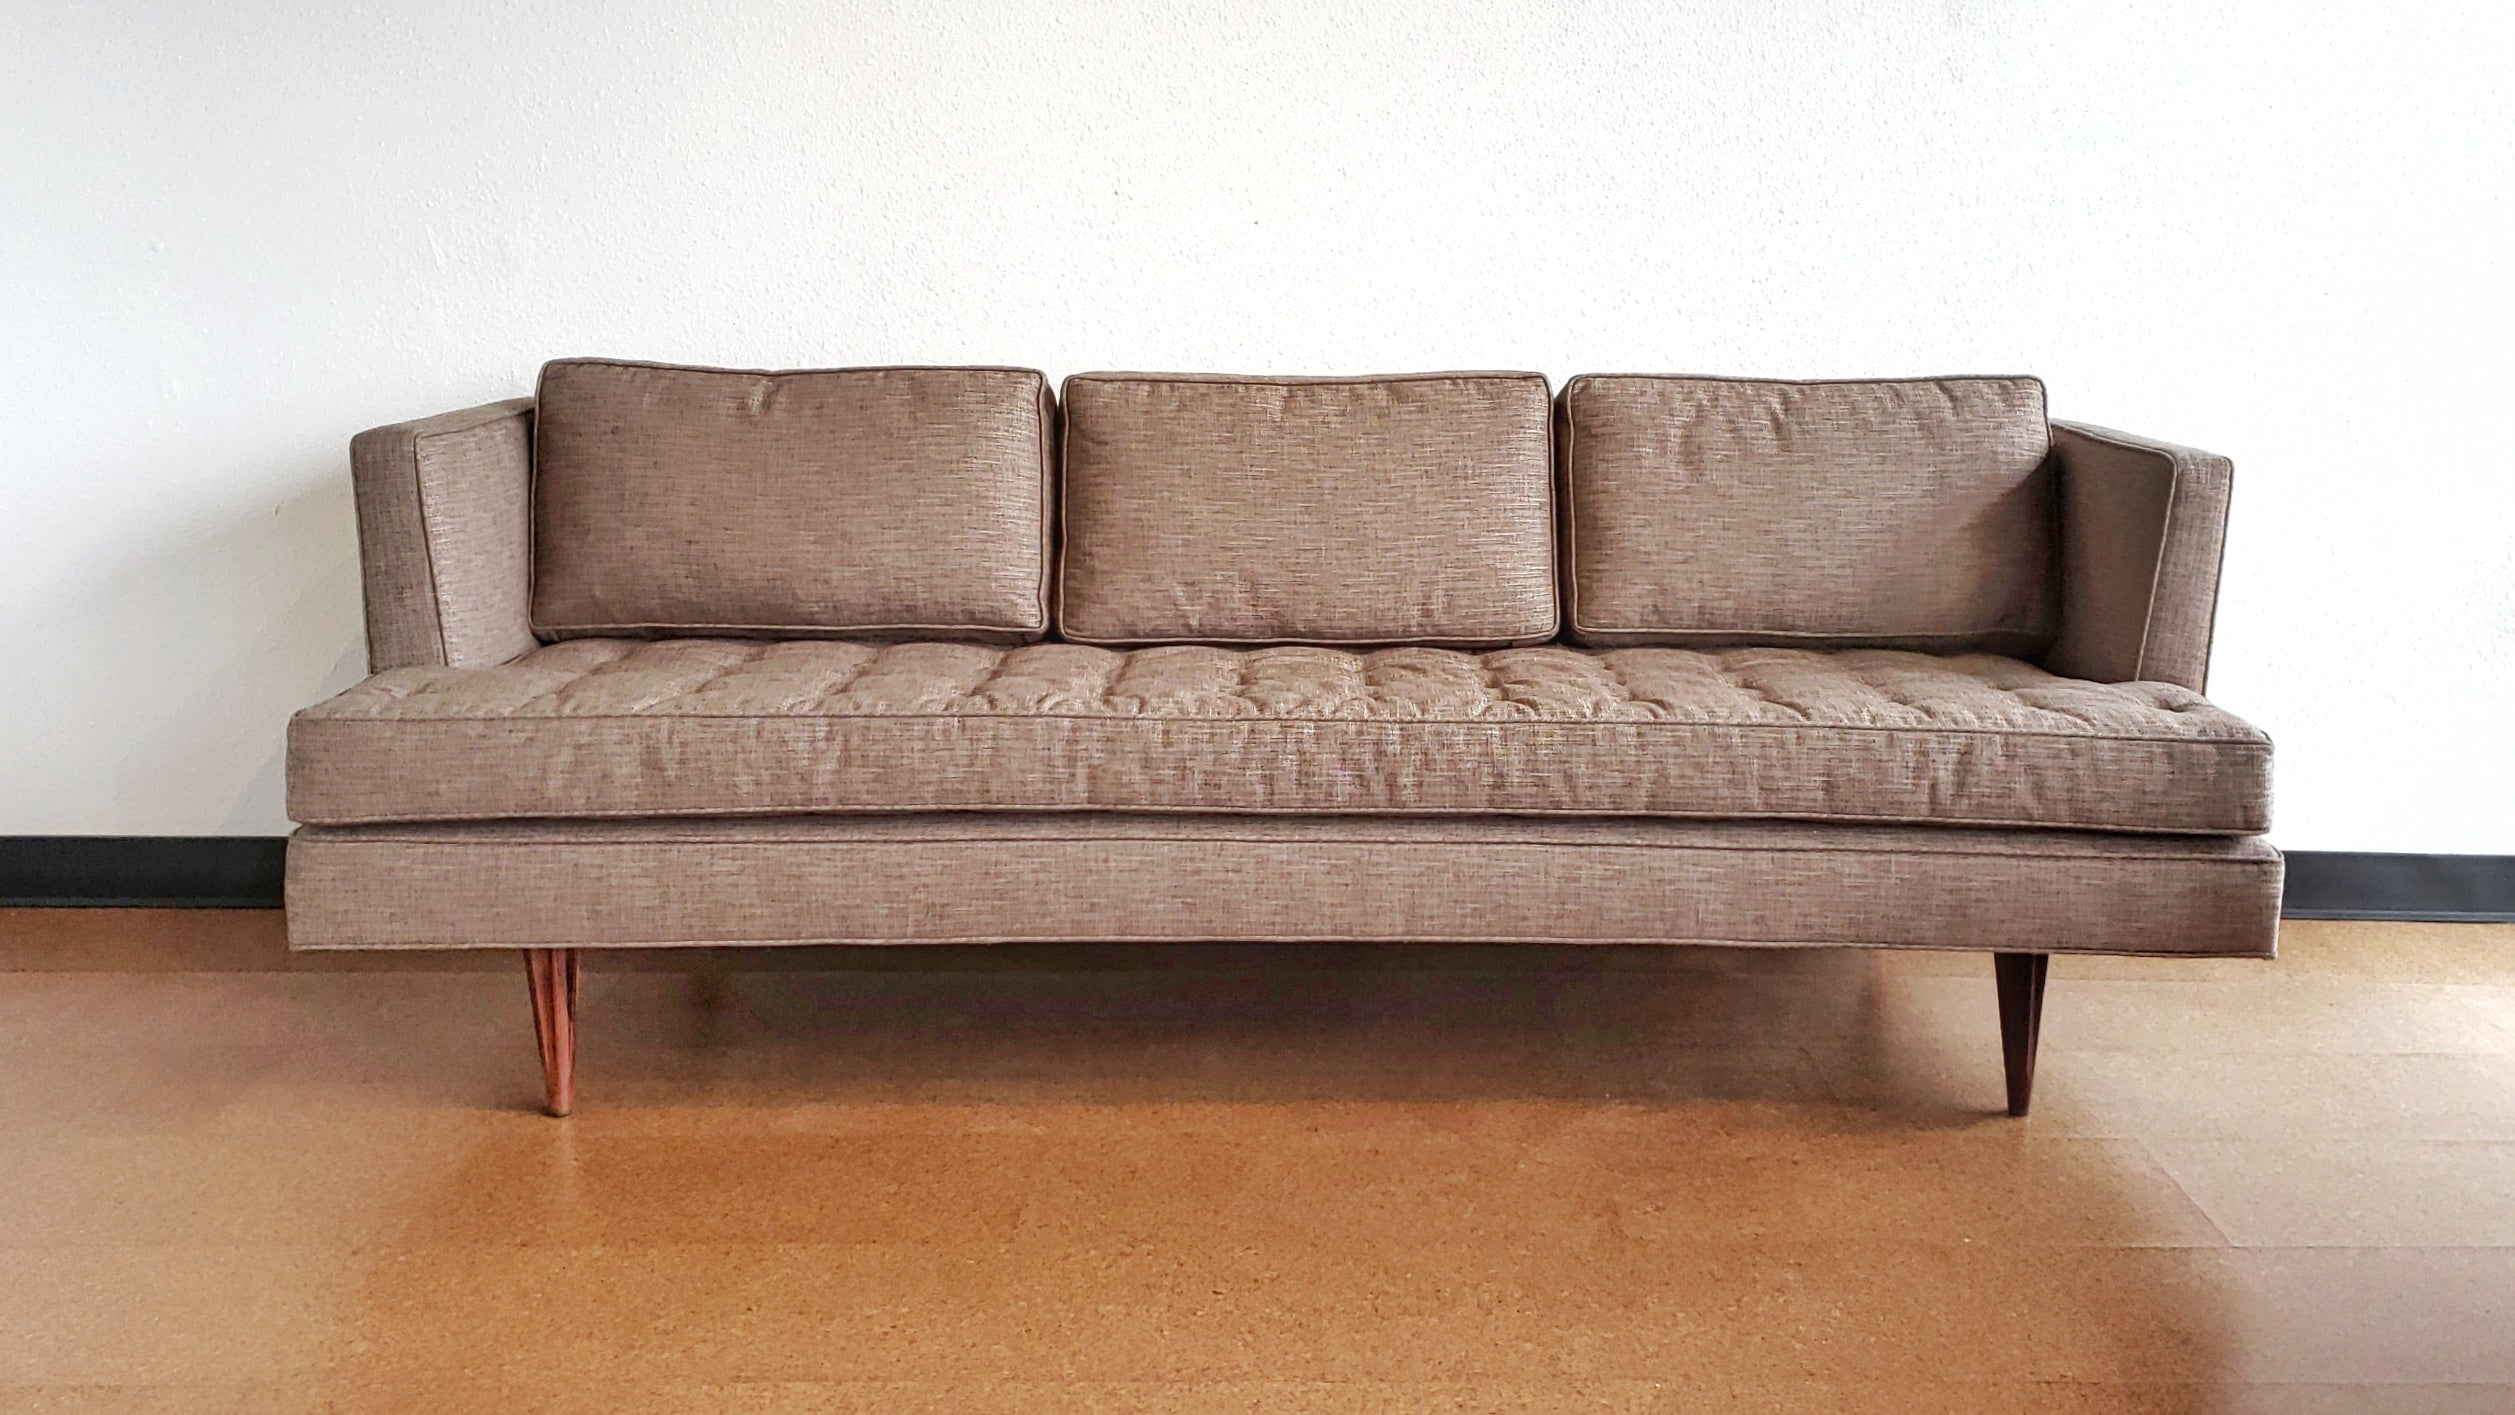 EDWARD WORMLEY SOFA 4907C FOR DUNBAR